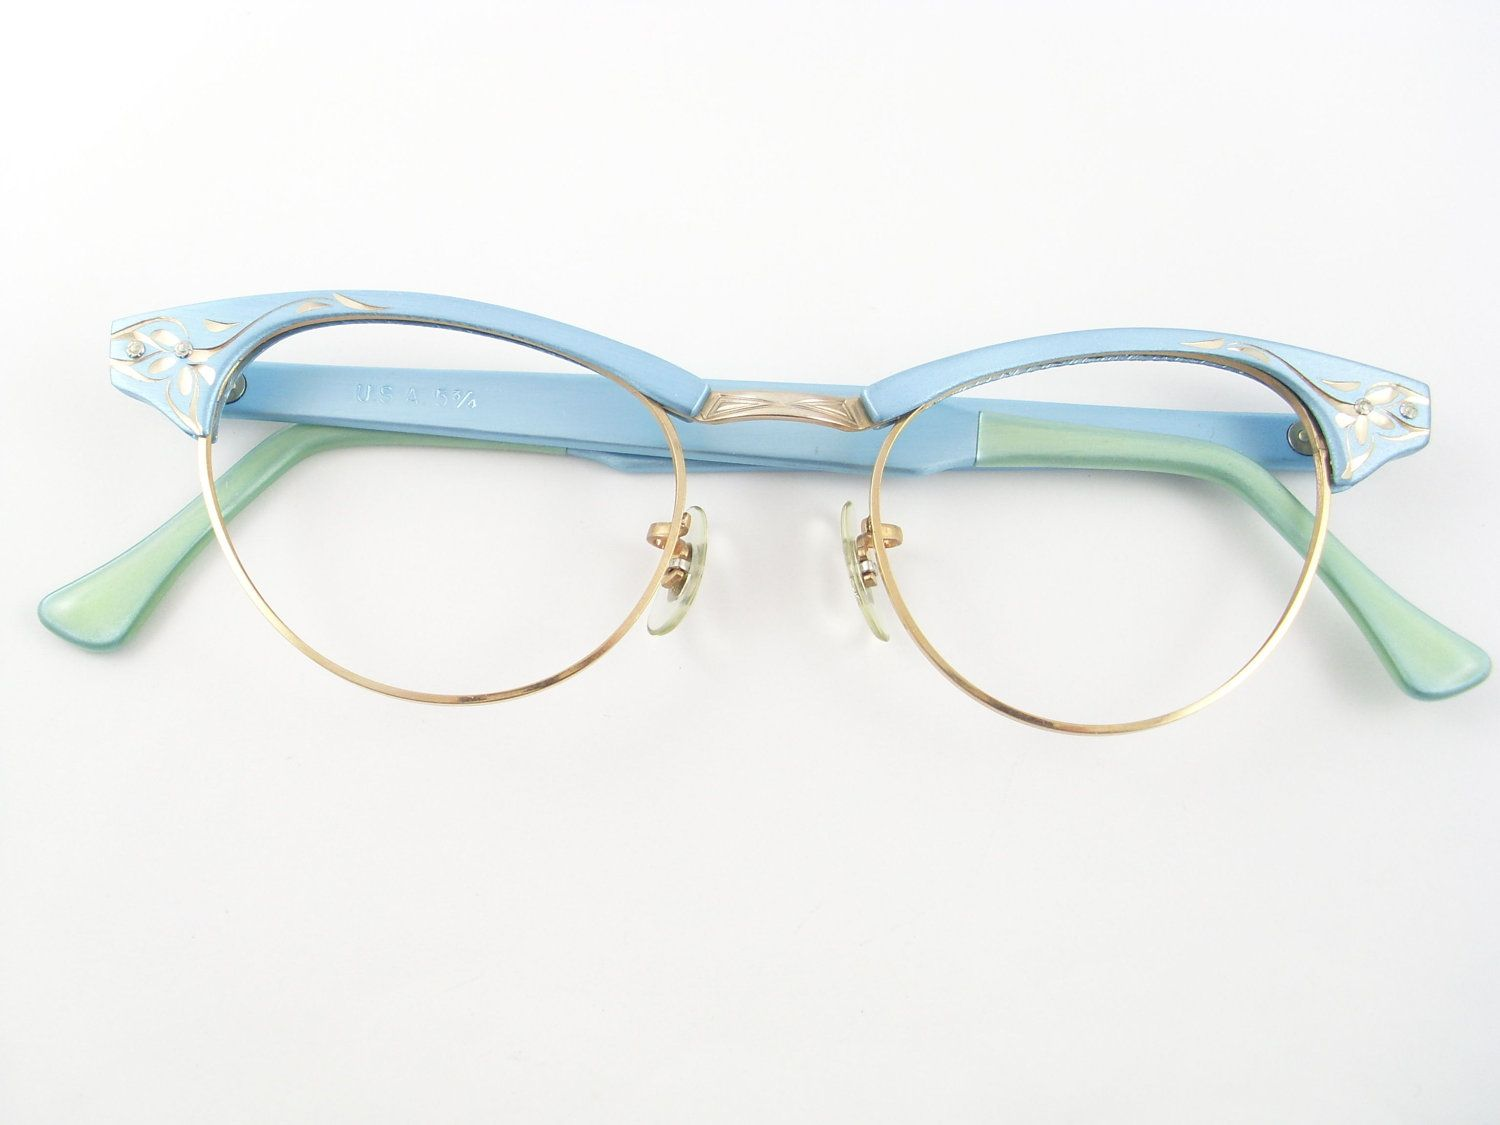 Pin By Ines Nieto Amoros On In The Closet 1950 S Vintage Cat Eye Glasses Cat Eye Glasses Glasses